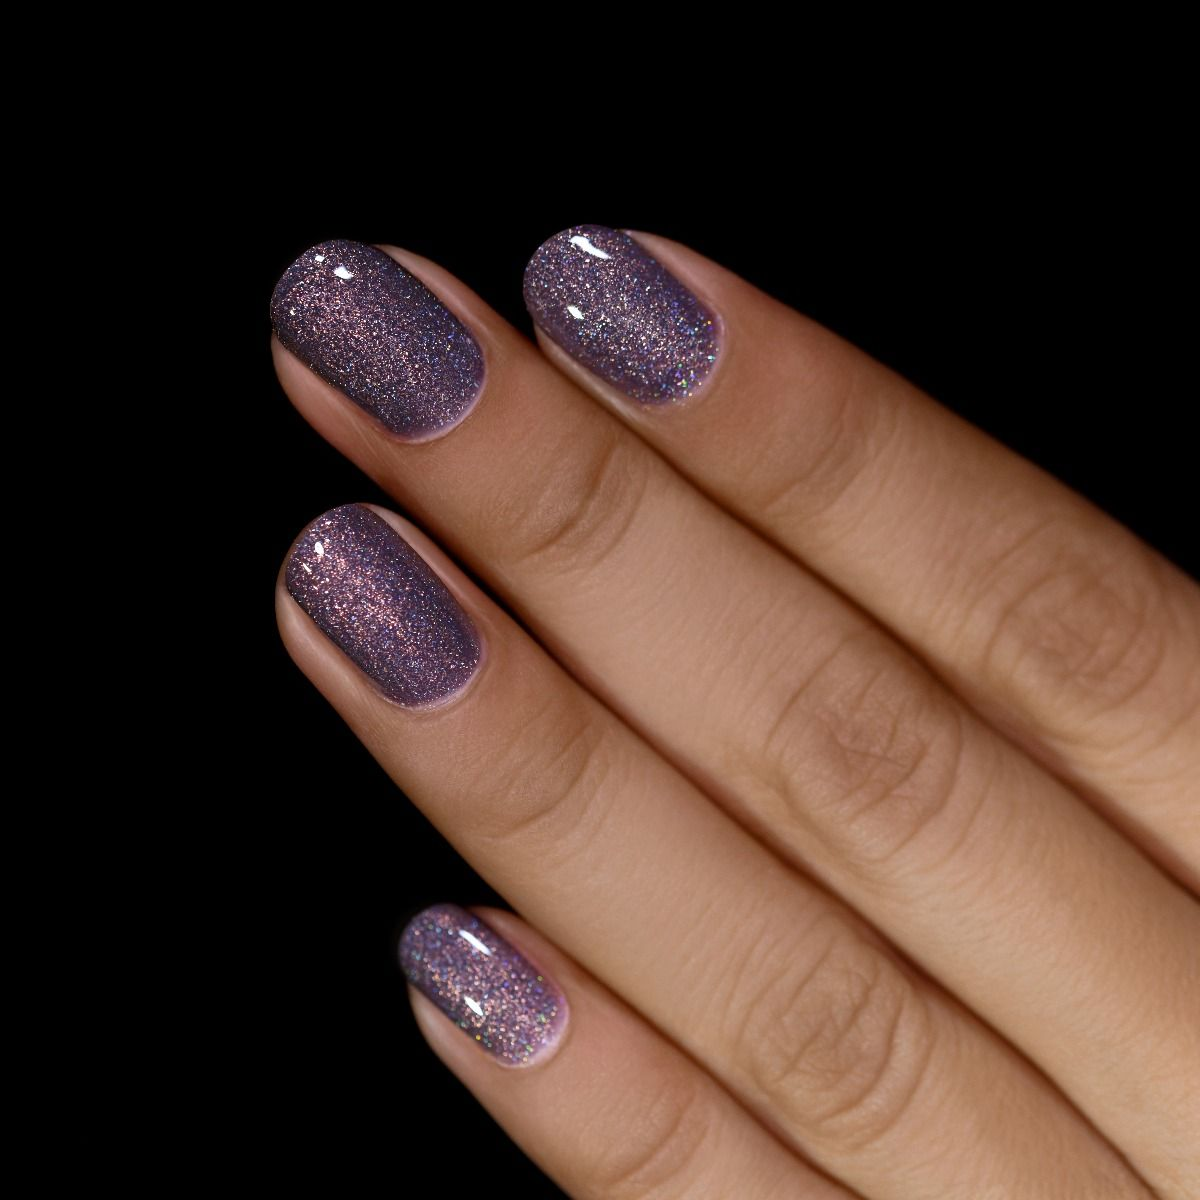 Chateau - Charcoal Grey Holographic Shimmer Nail Polish by ILNP